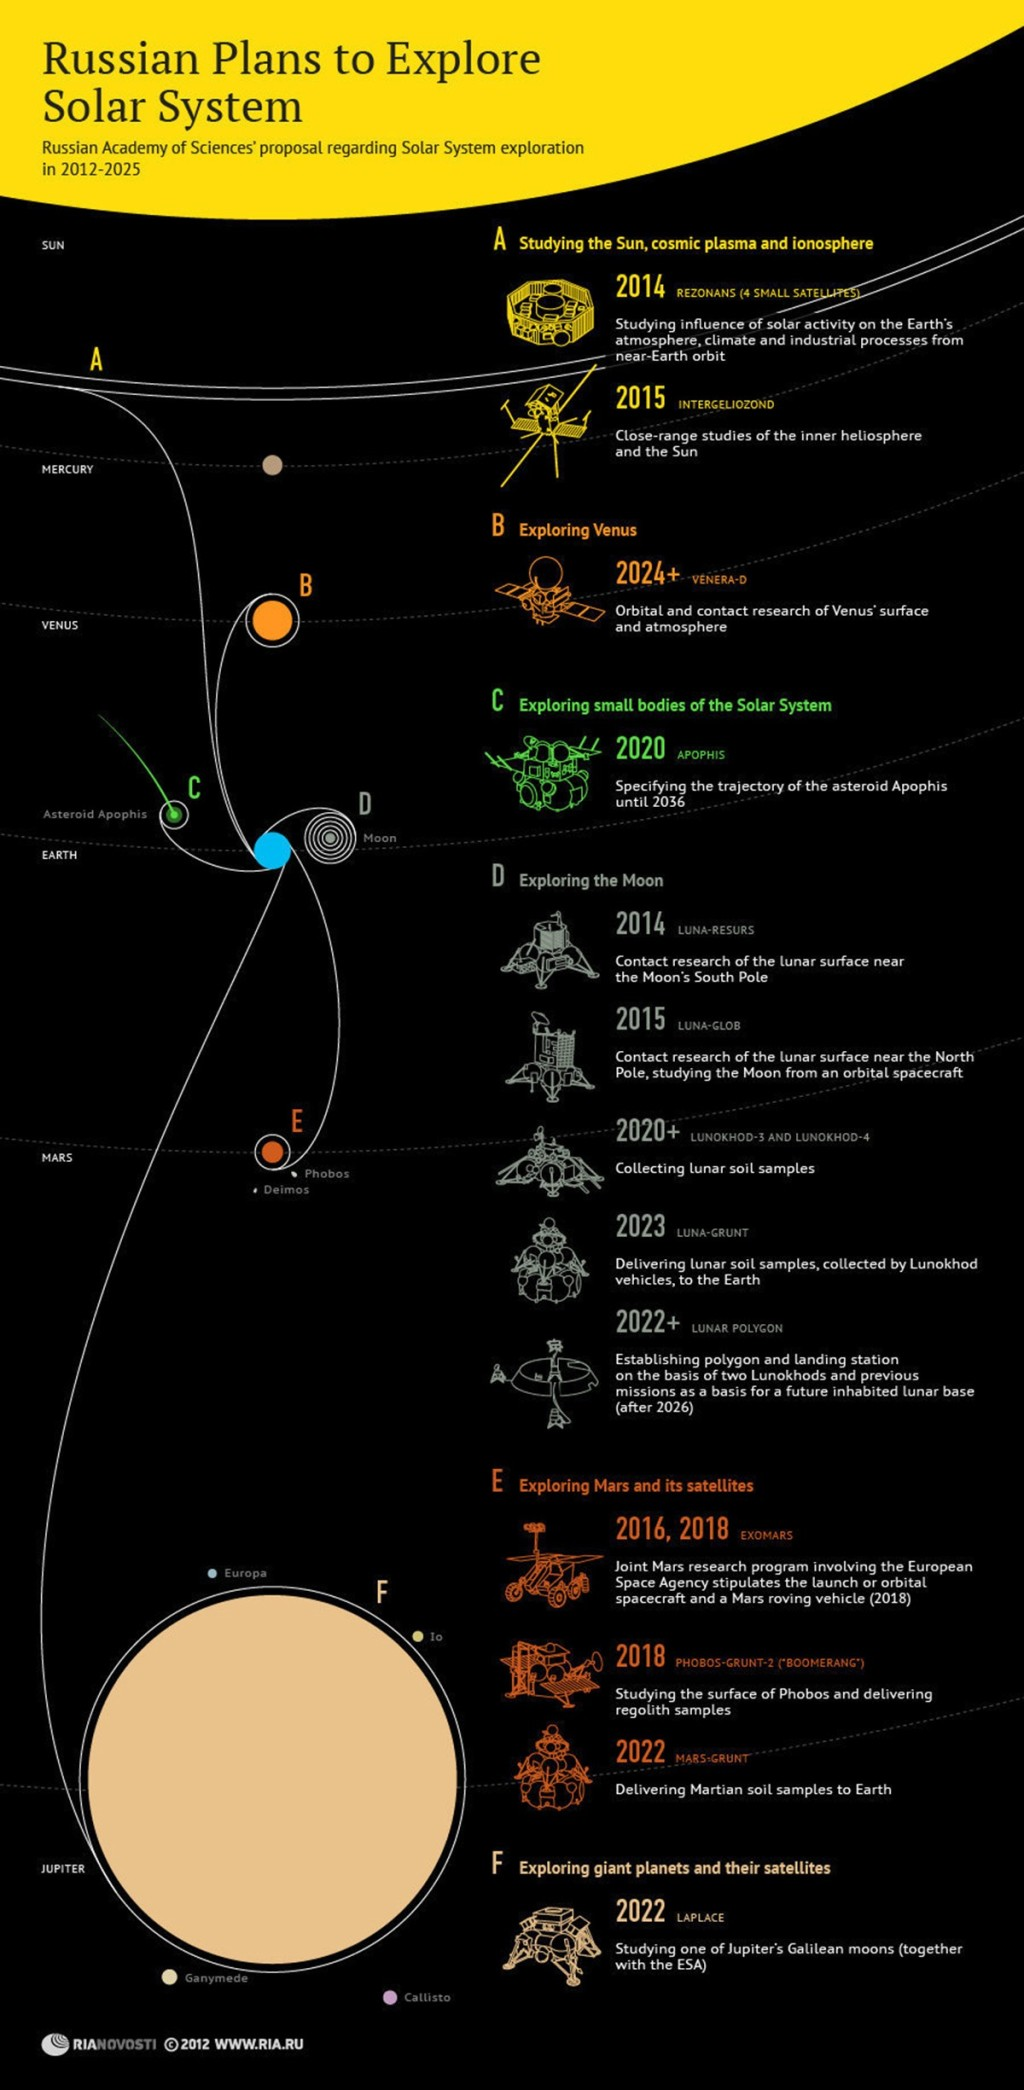 00 RIA-Novosti Inforgraphics. Russian Plans to Explore the Solar System. 2012